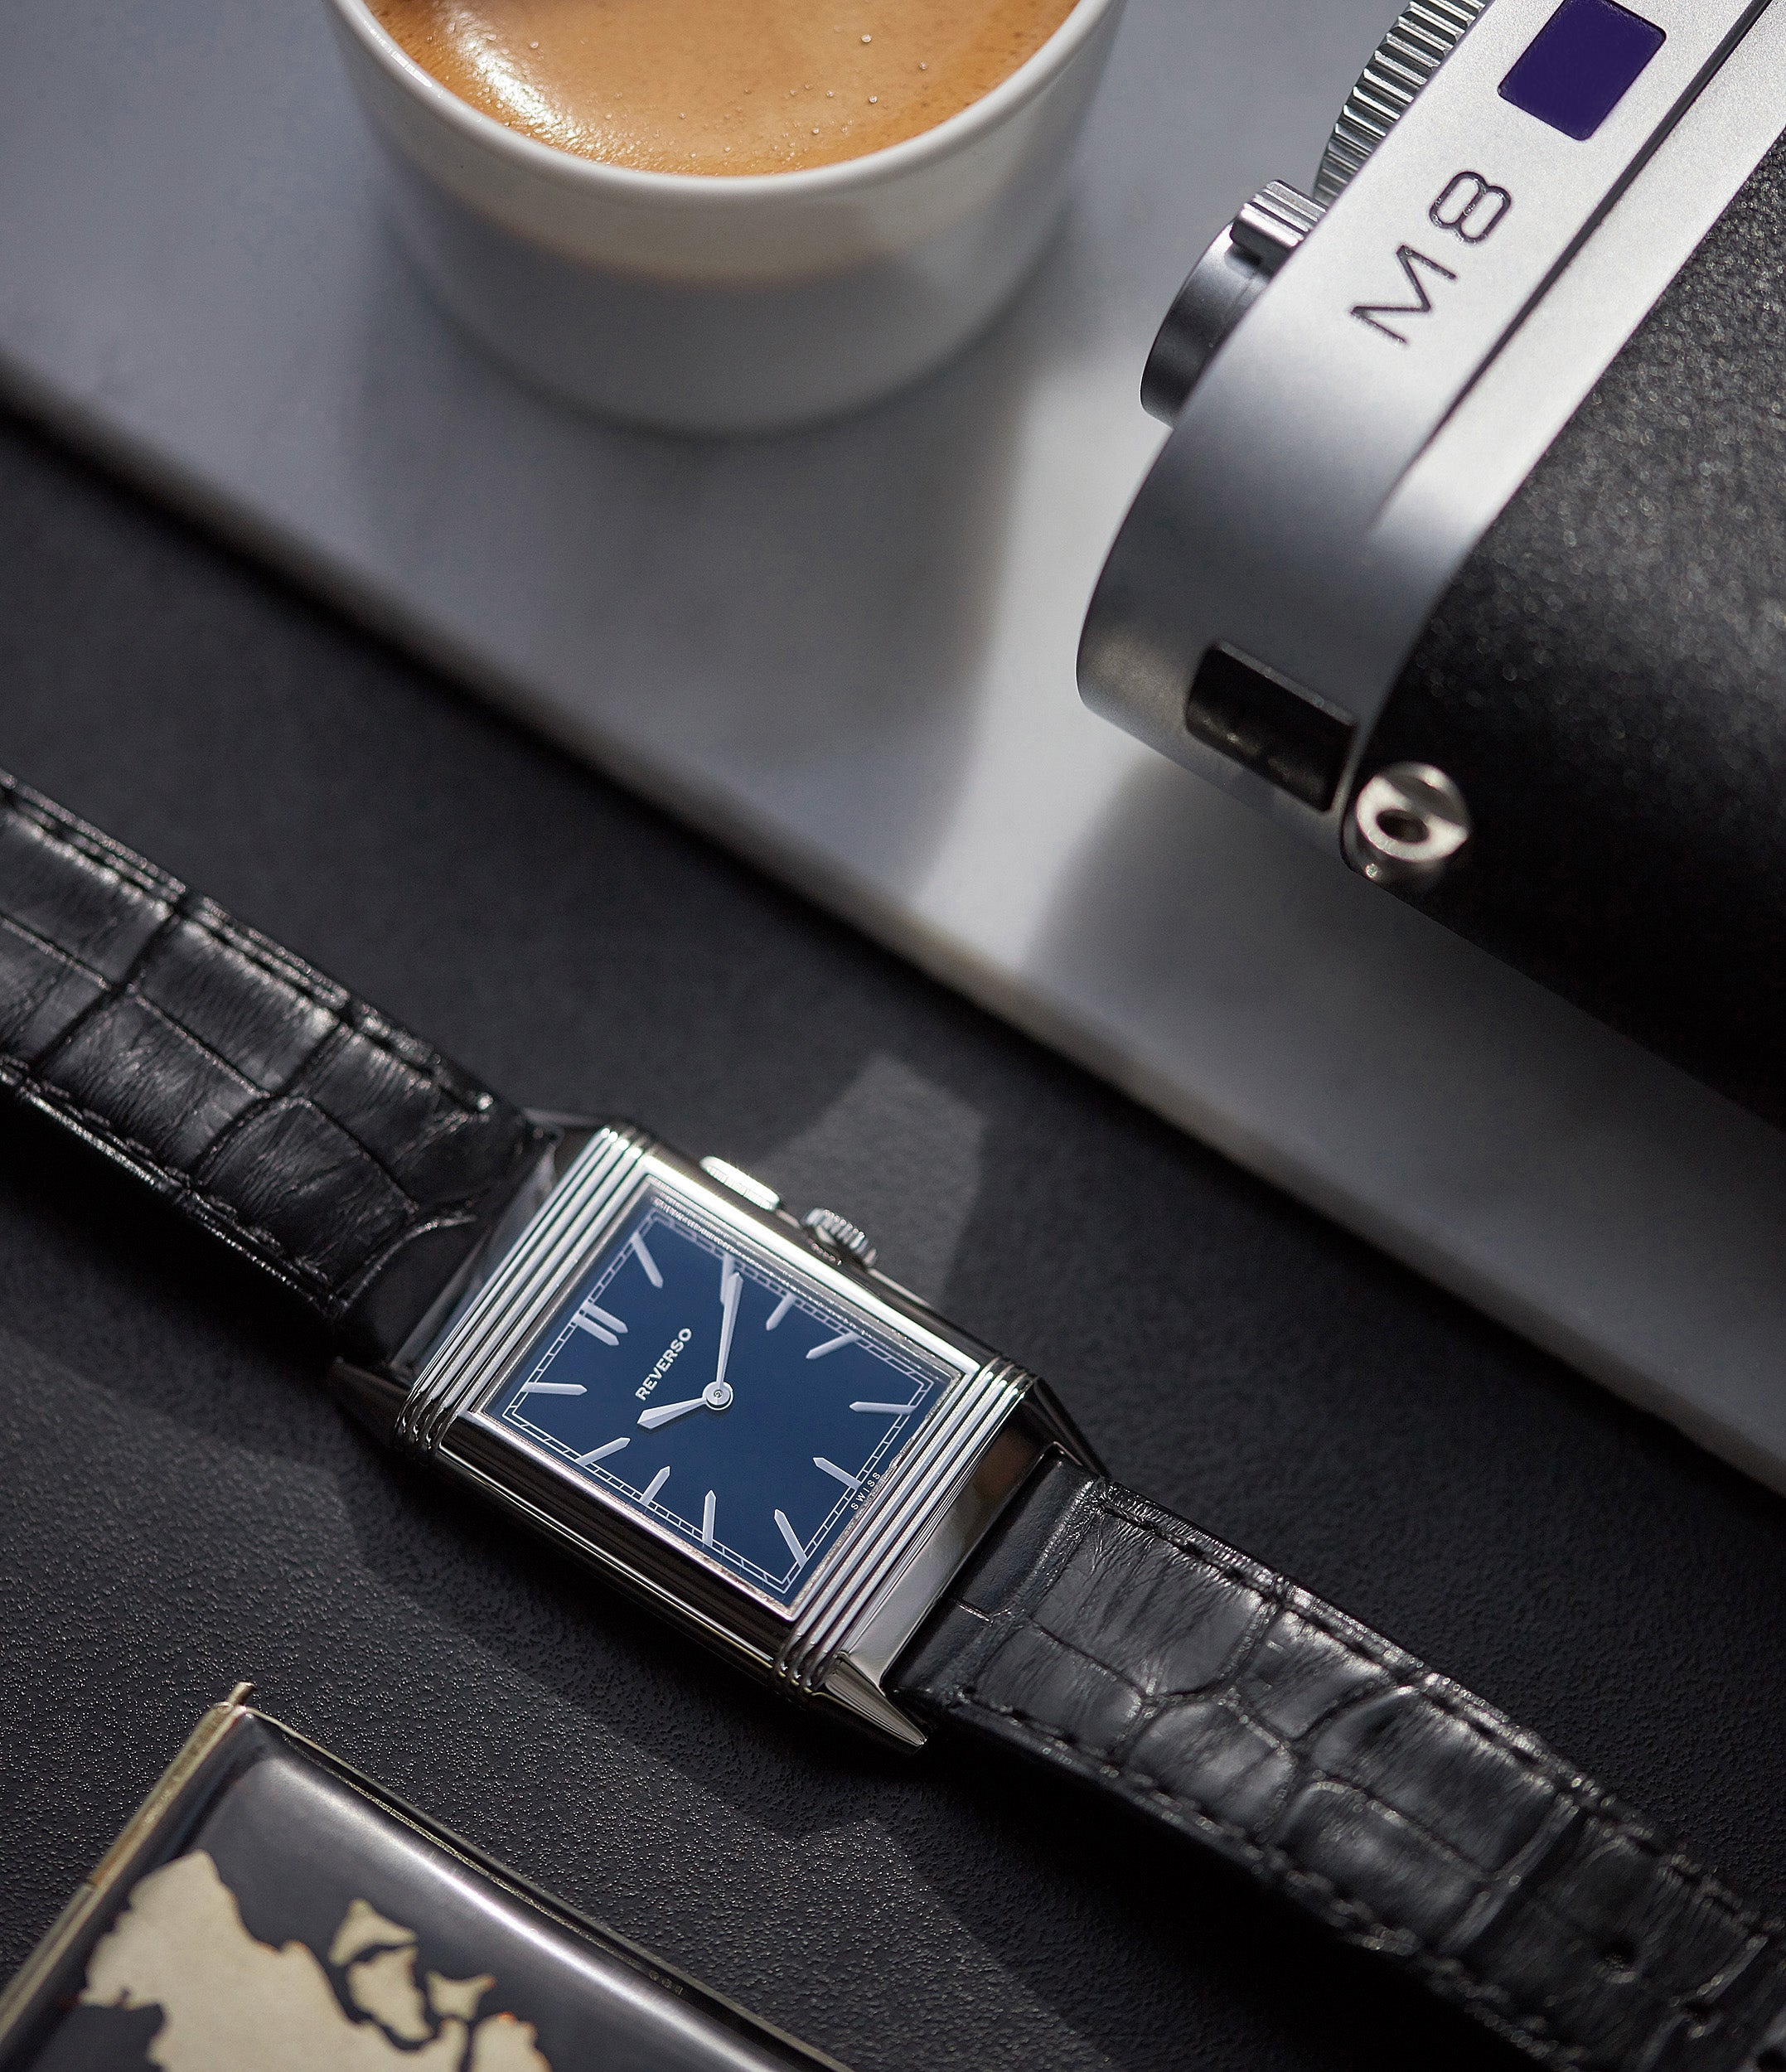 Duoface Blue Jaeger-LeCoultre Grand Reverso Ultra-Thin Boutique Edition 278.8.54 steel preowned traveller dress watch